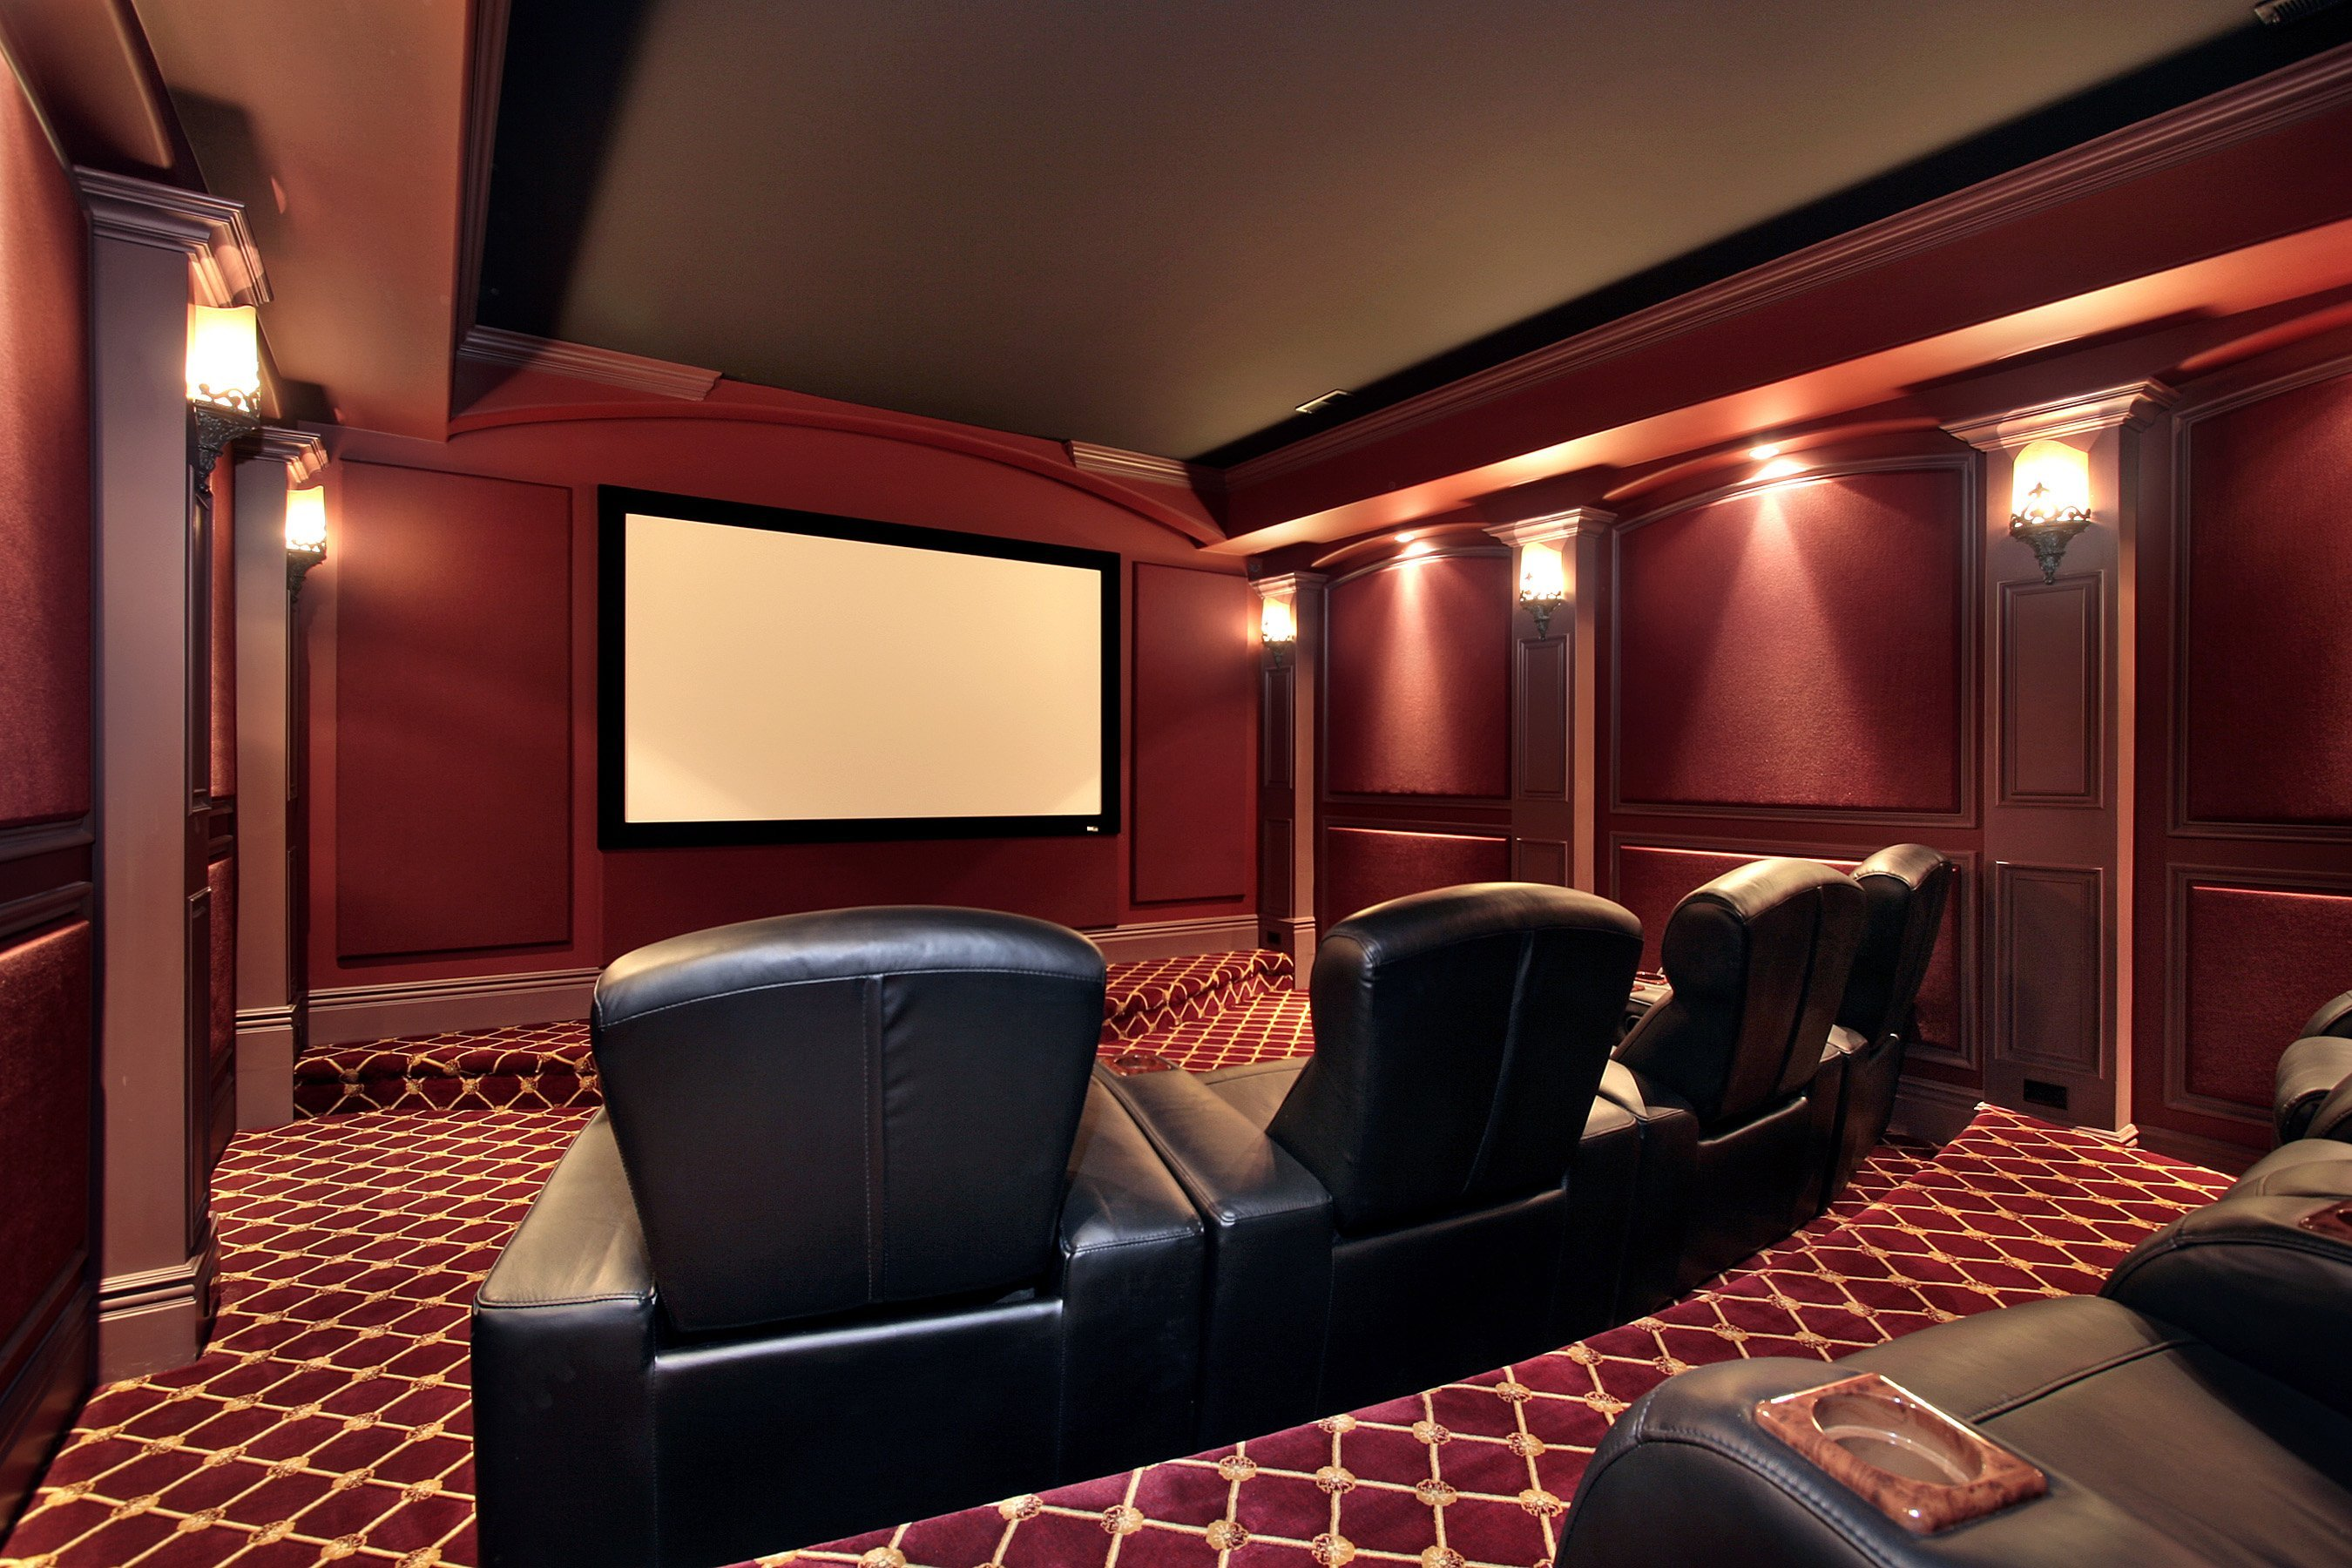 home theater height theatre cinema from size stairwell of large sconce recessed lights light floor lighting sconces wall